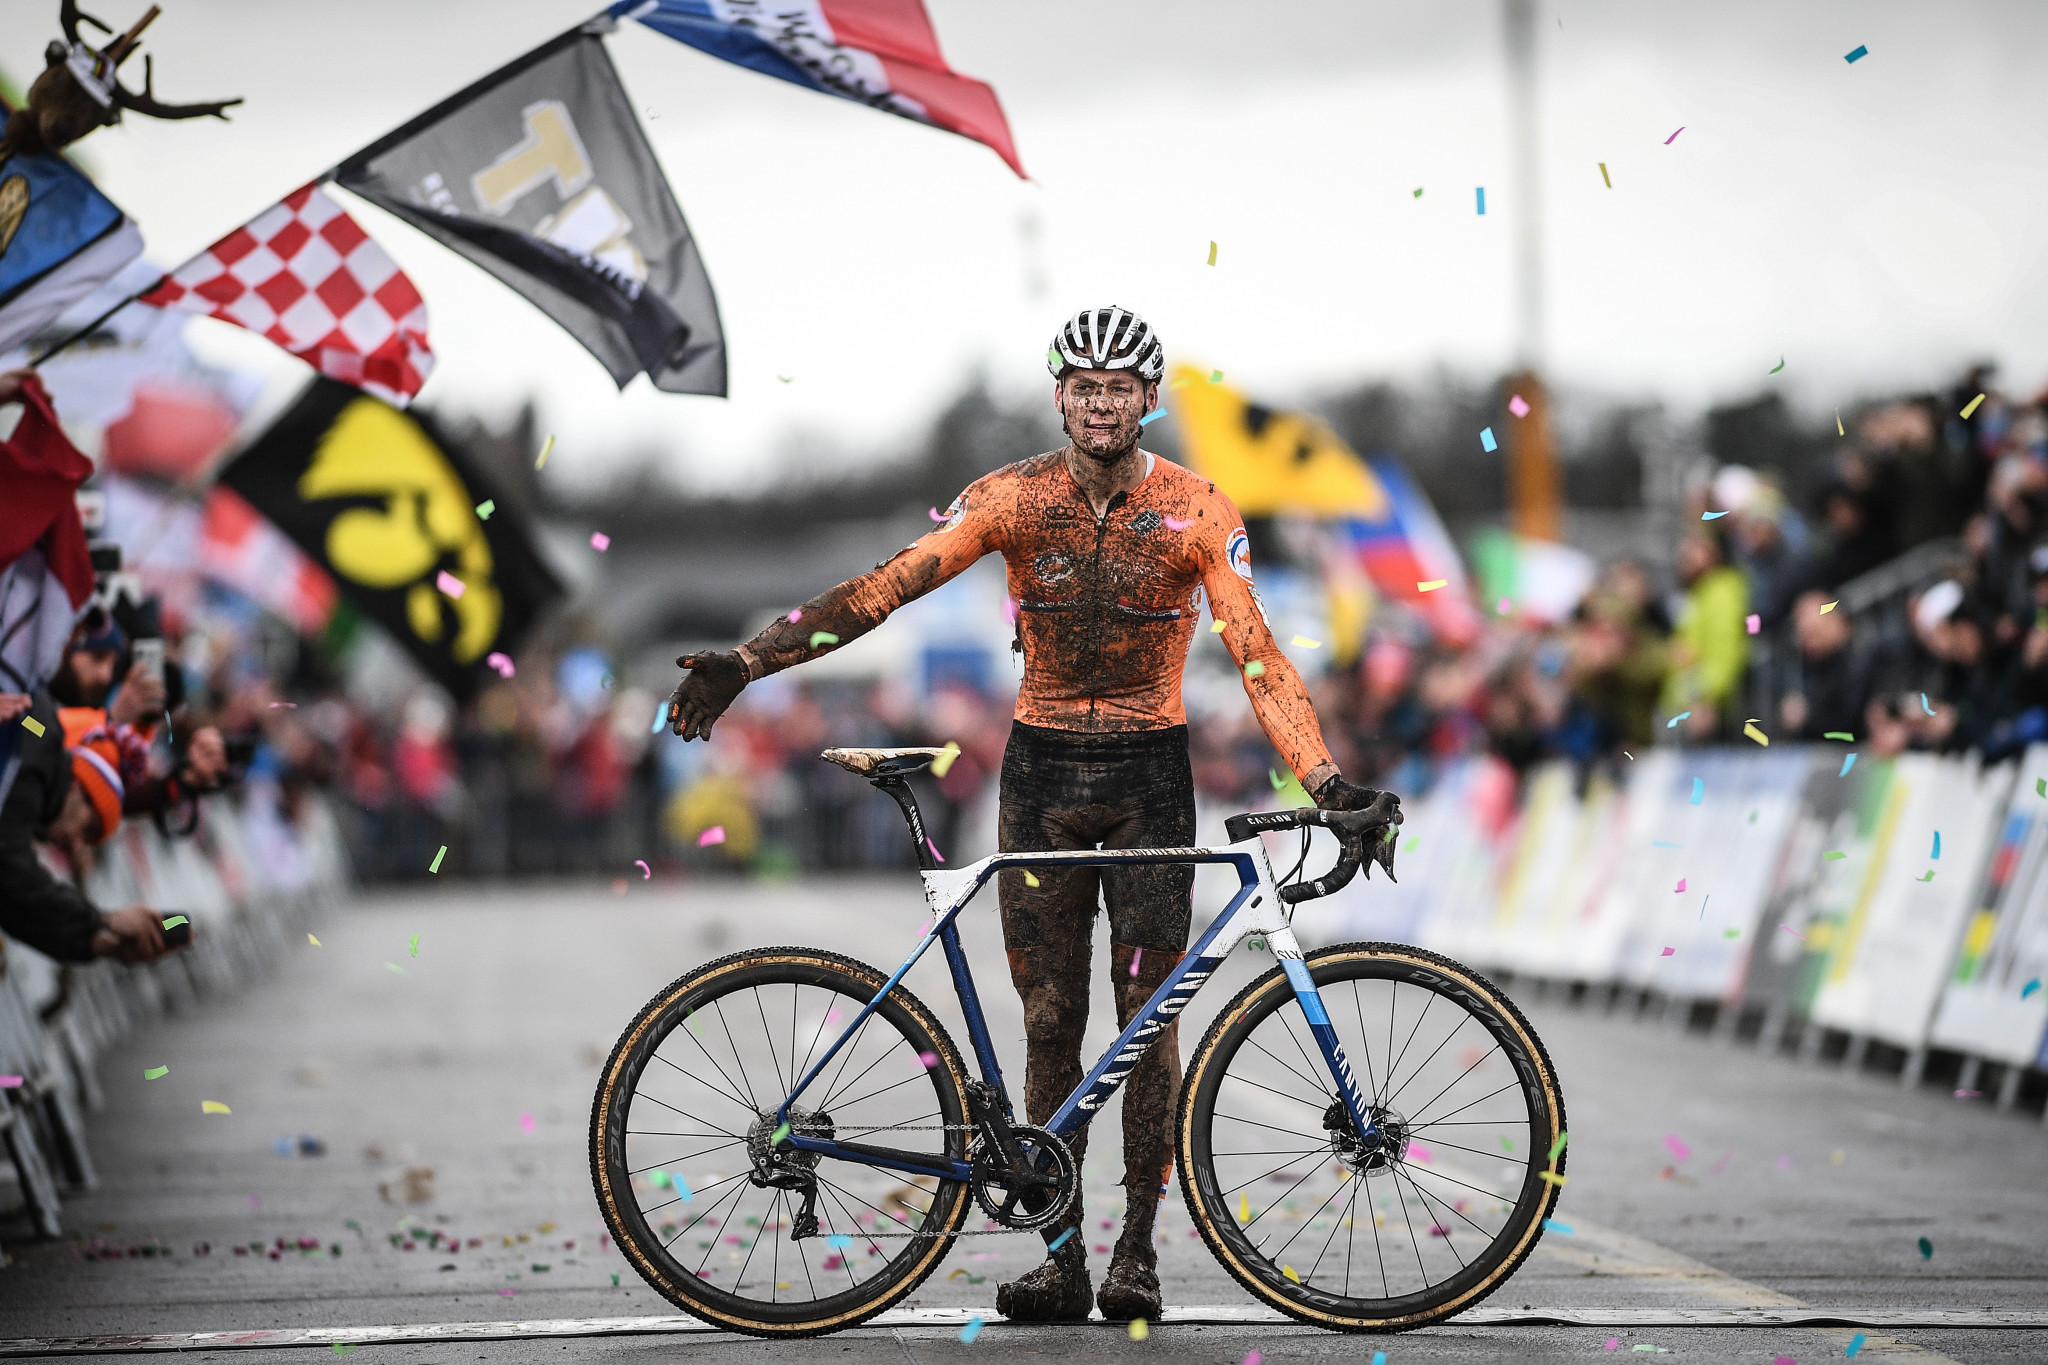 Van der Poel earns third title at UCI Cyclo-cross World Championships